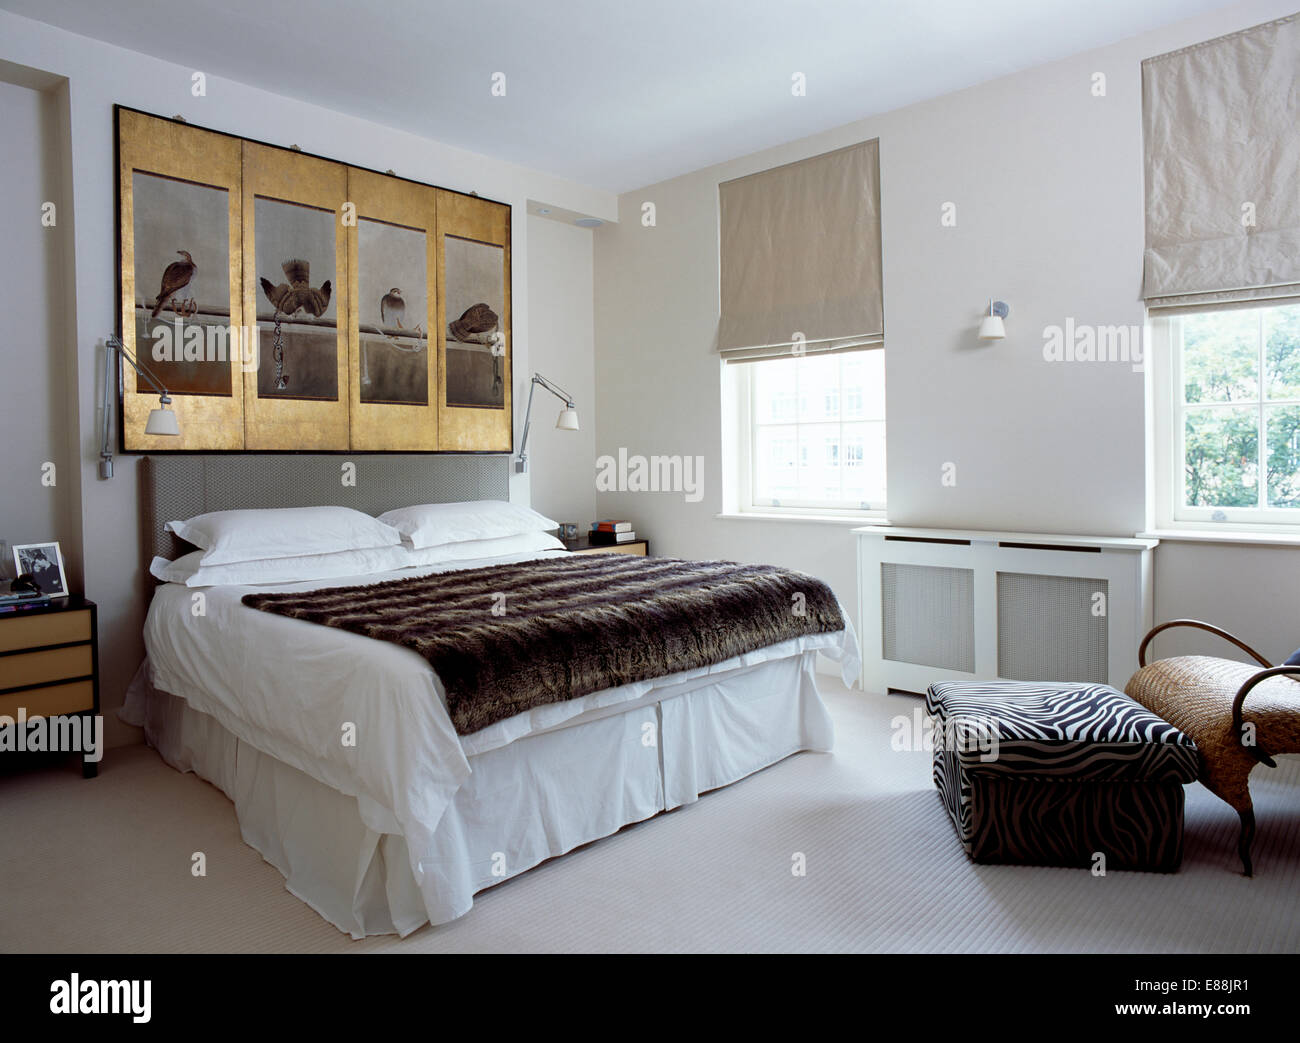 Gilt Framed Antique Panels Above Bed With Faux Fur Throw And White Linen In Modern  Bedroom With Grey Blinds At Windows